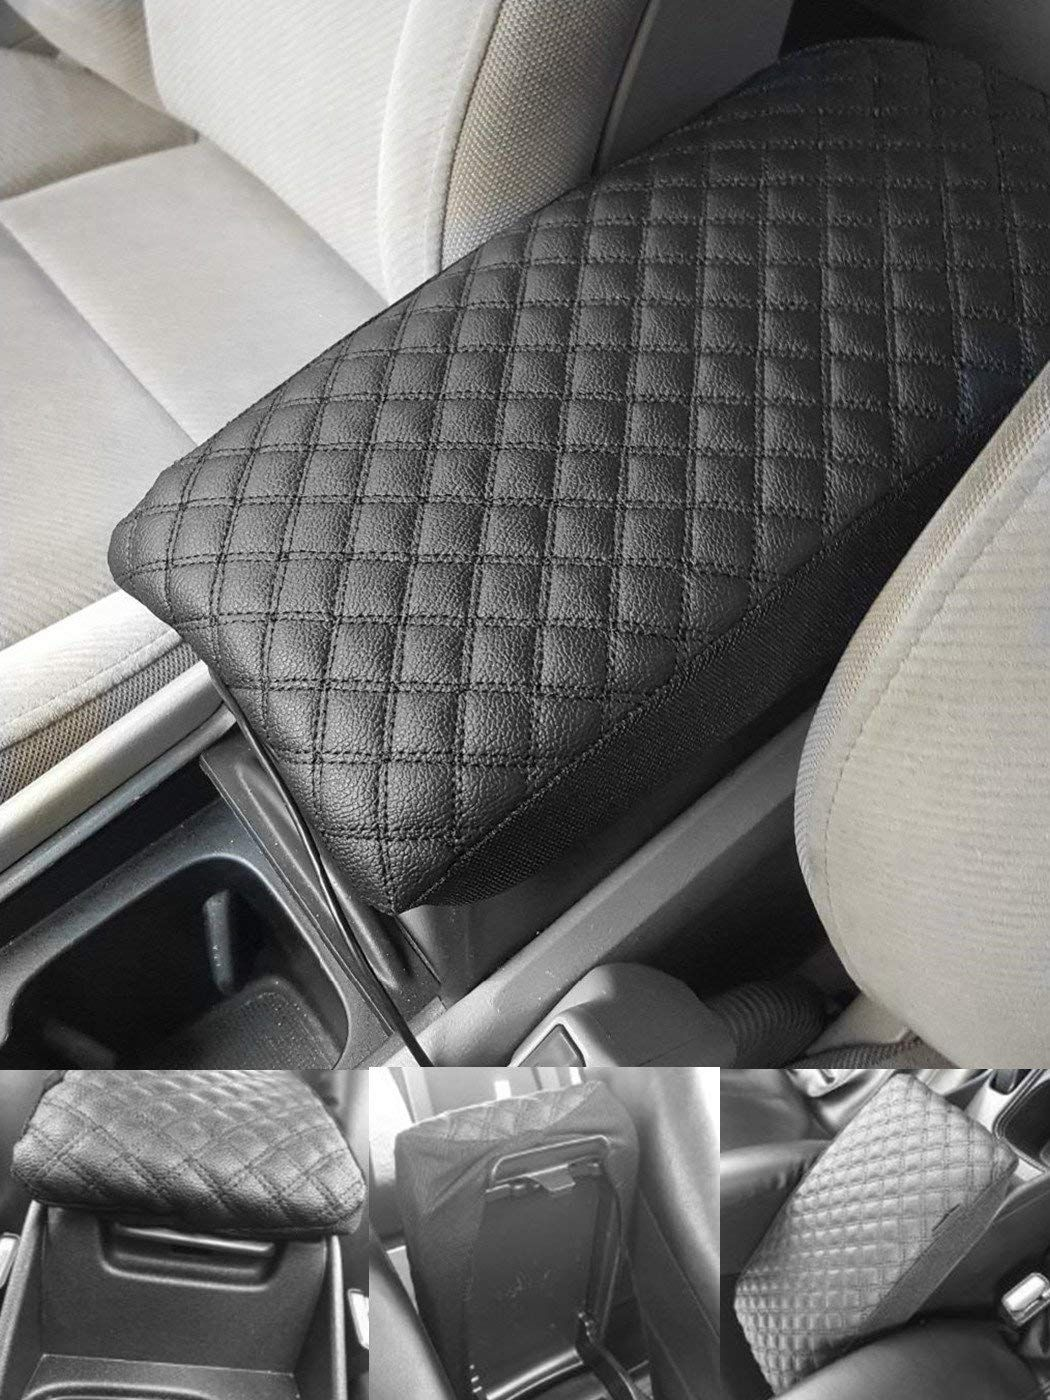 Fit For Lexus Gs300 Gs350 Gs400 Gs430 Gs450h Gs650 Center Console Lid Armrest Cover Protector Click On The Image For A In 2020 Car Console Center Console Honda Civic